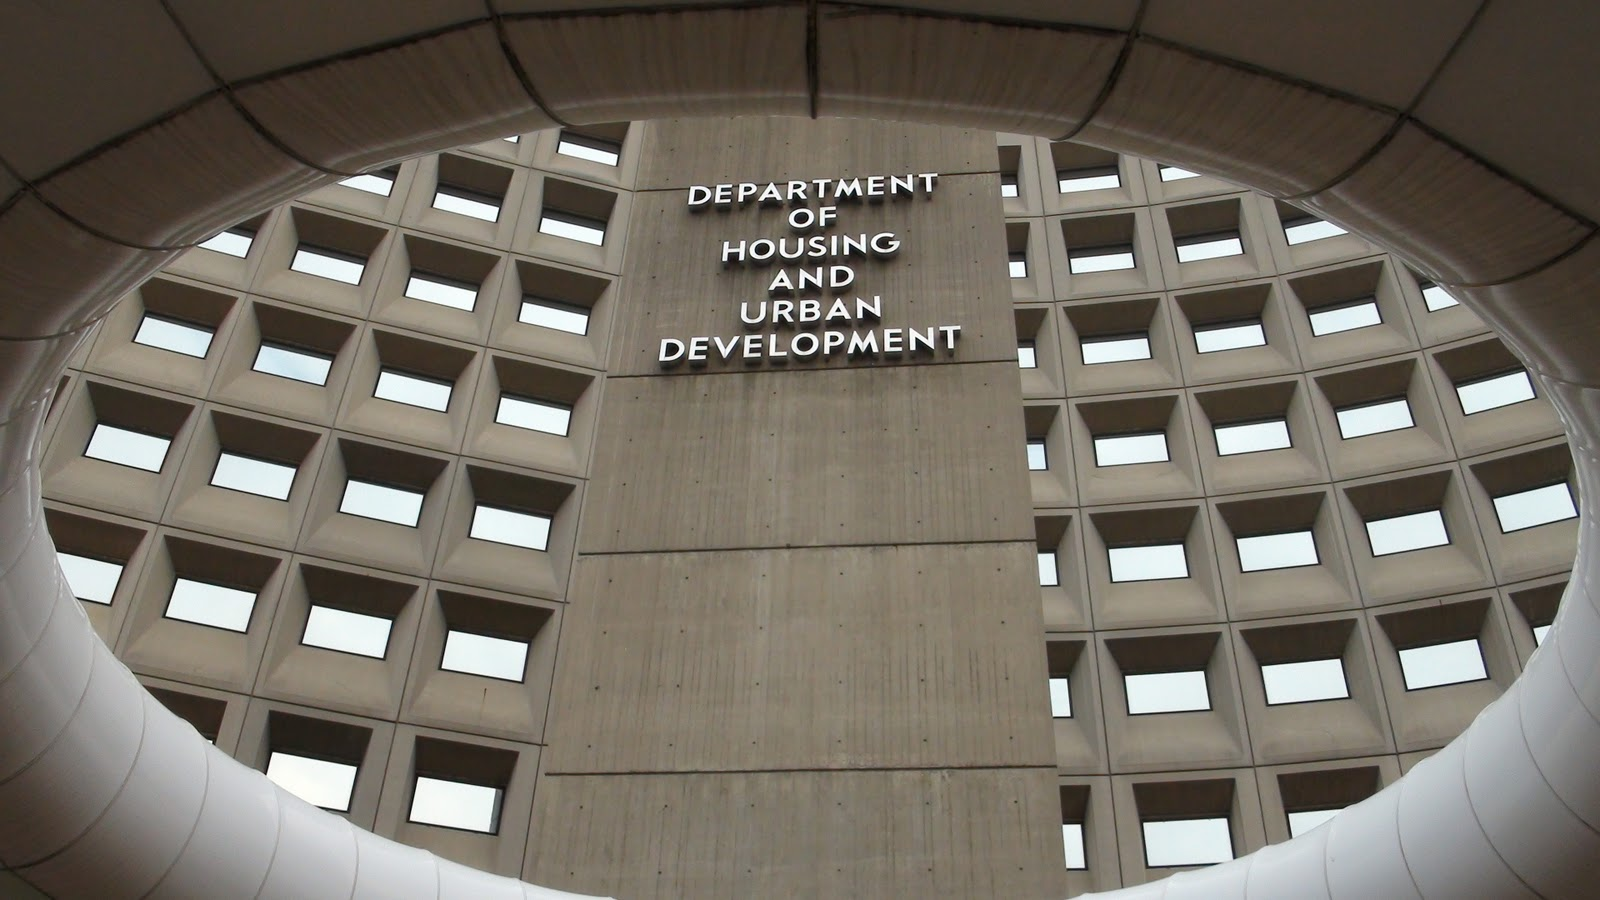 HUD Paid Nearly $1M For Top Exec's Single 'Buckwheat' Reference